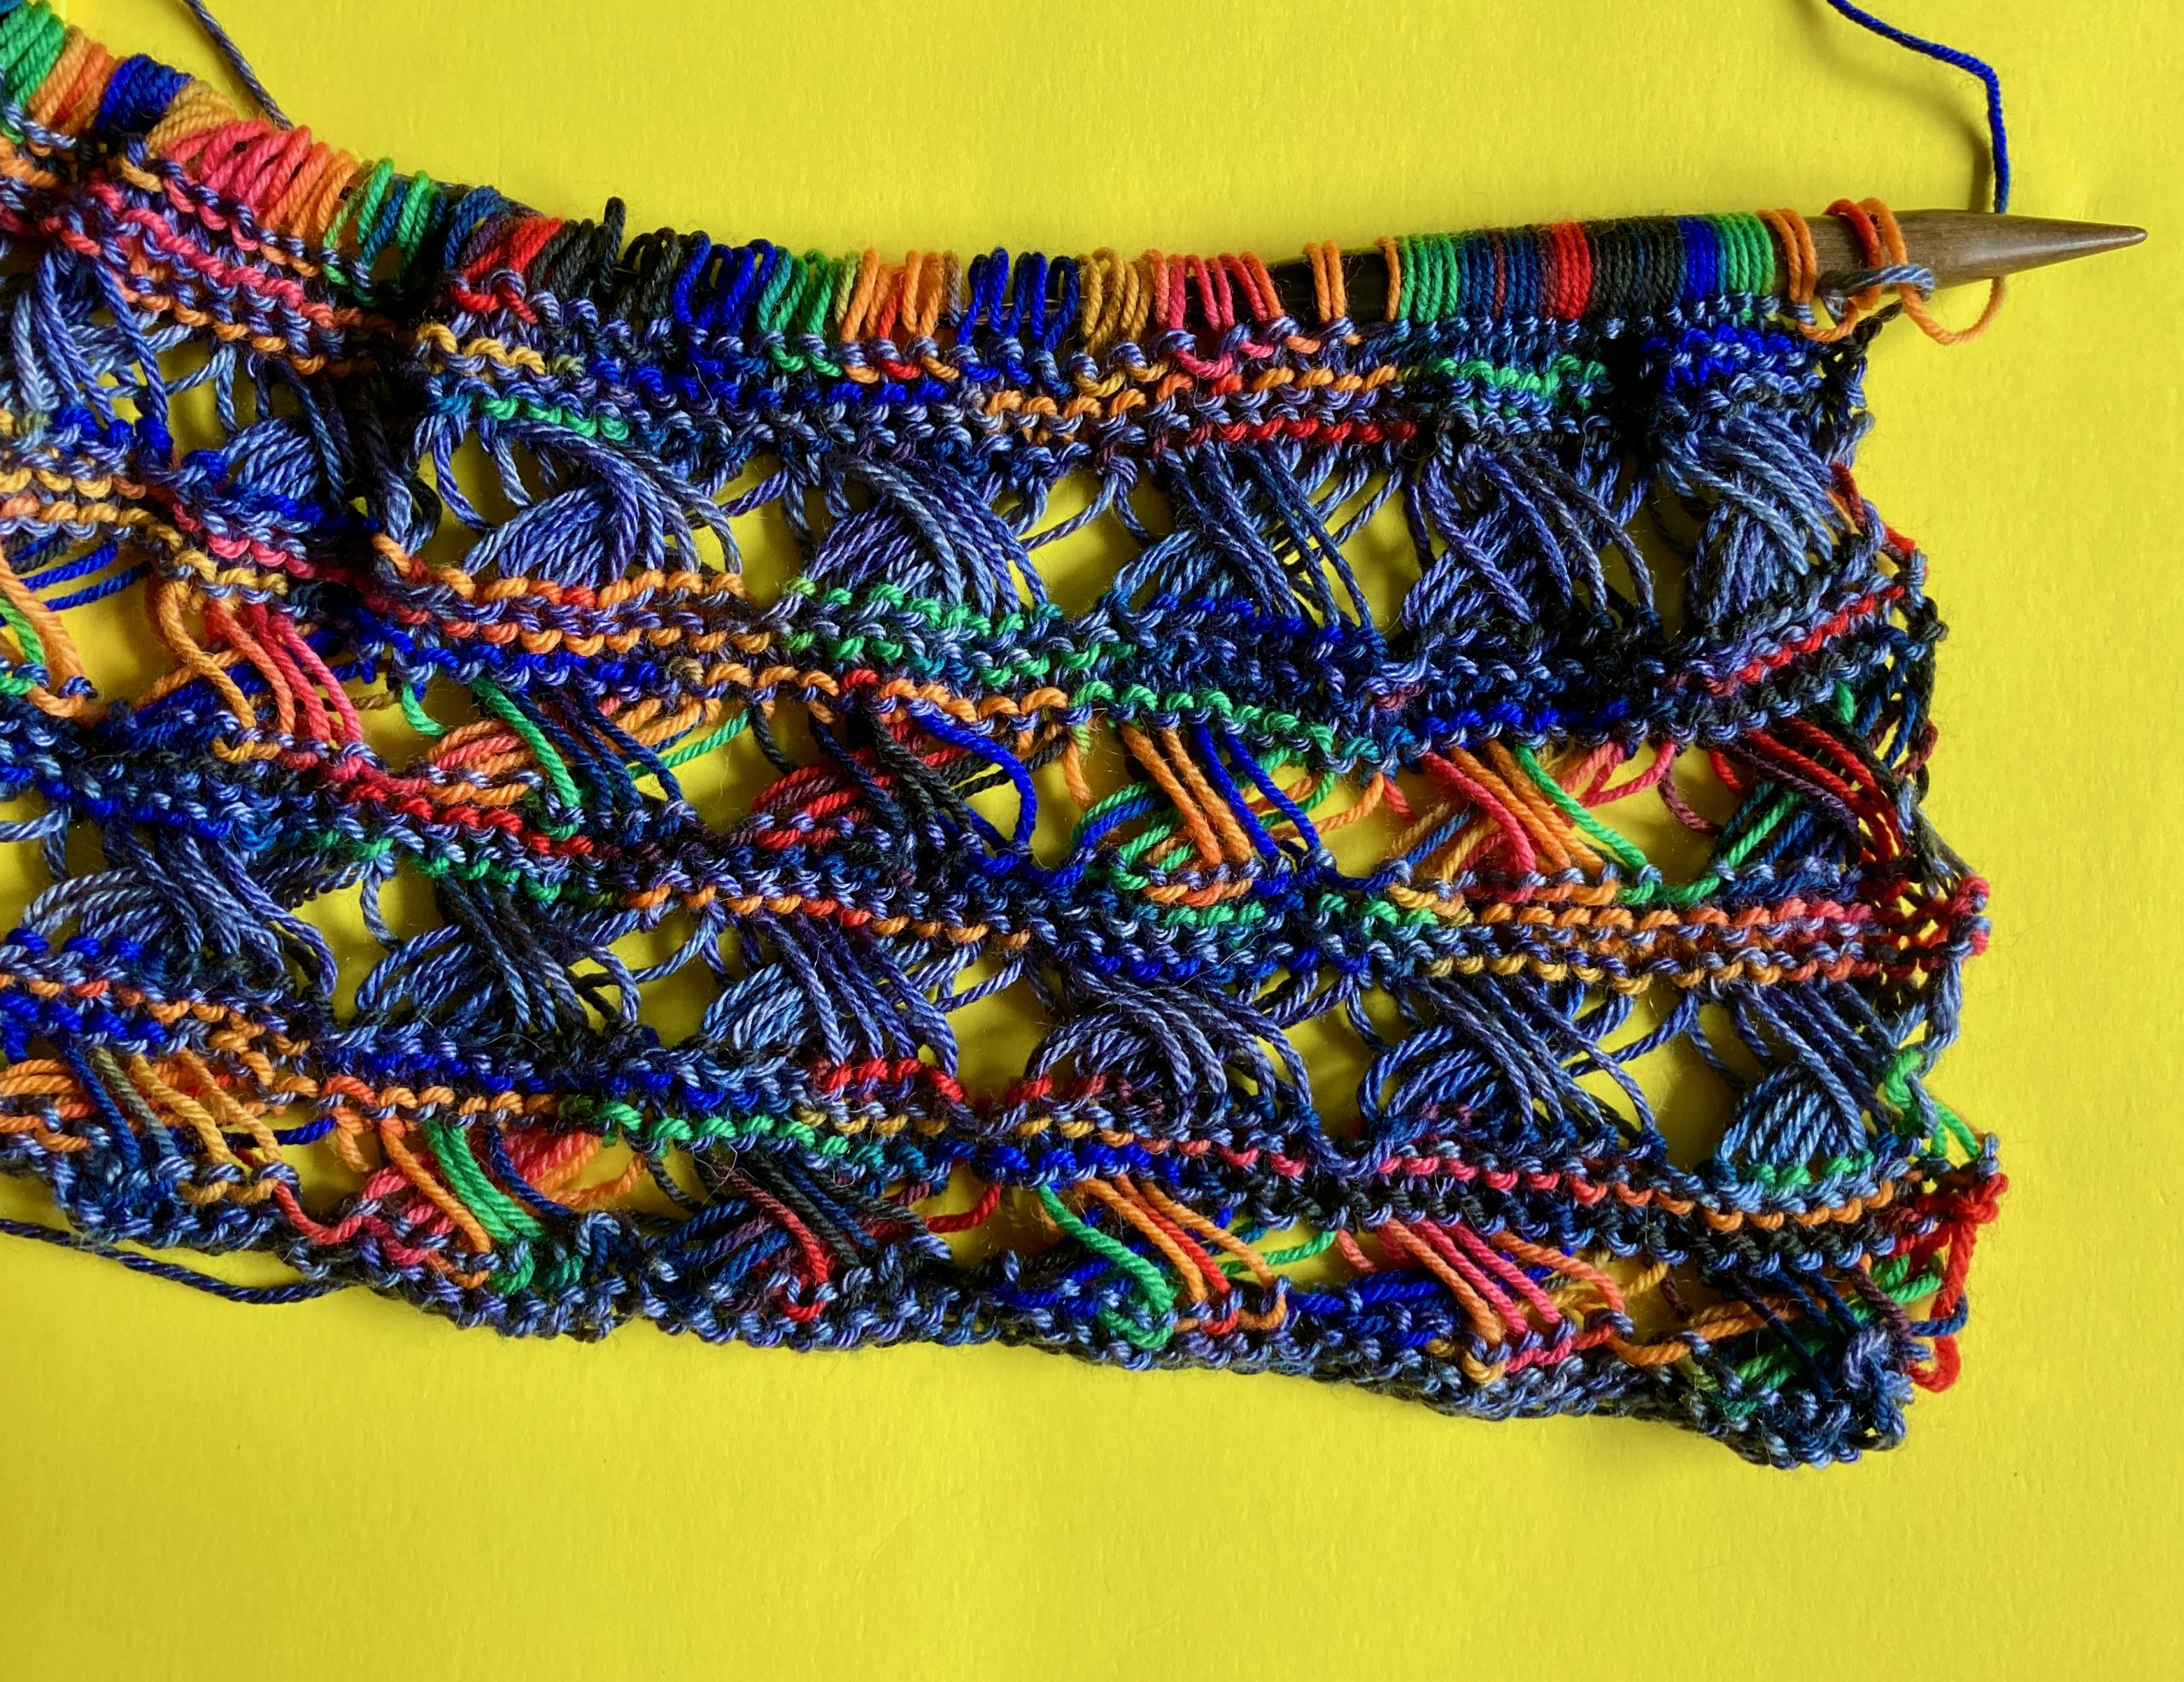 Old Reliable - Knitted Cross Stitch Scarf 07-03-20 02